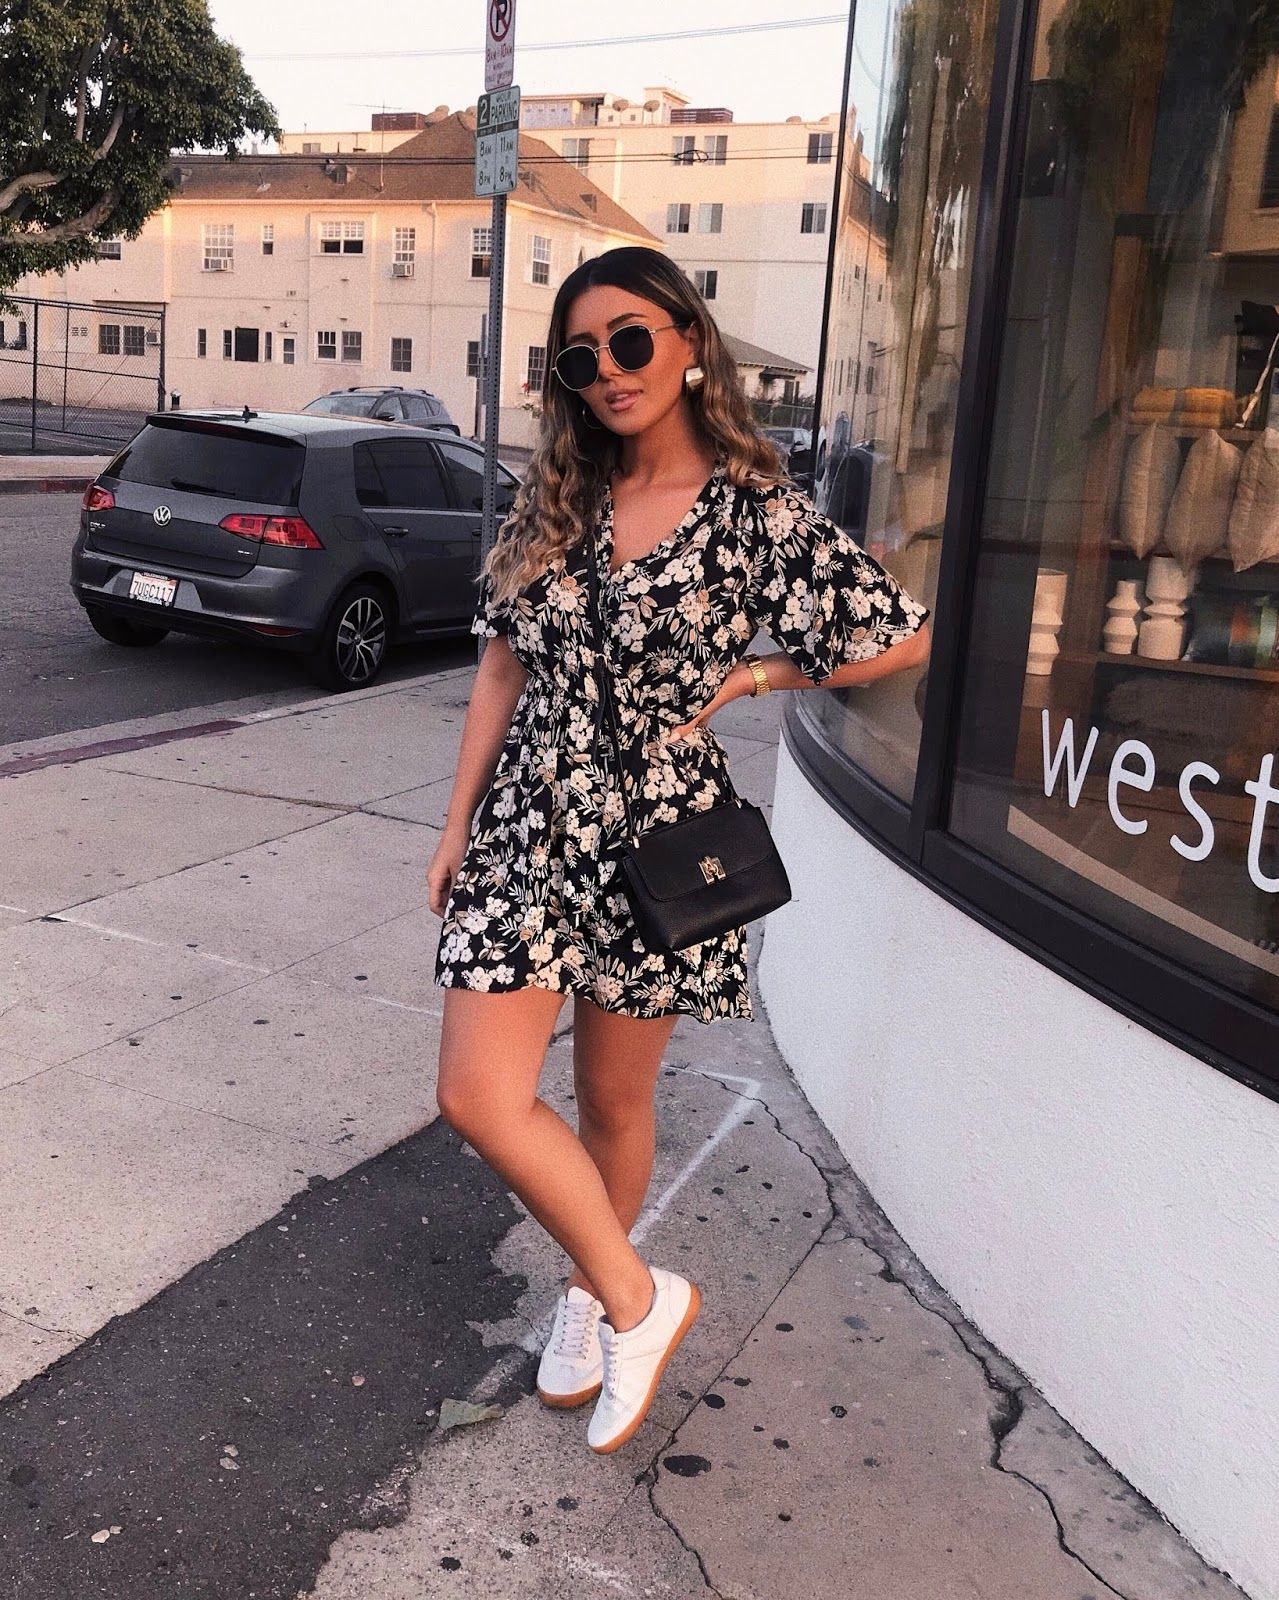 How To Style Dresses With Sneakers Floral Dress Summer 2018 Trends Mango Cross Dress And Sneakers Outfit Floral Dress Outfit Summer Summer Dress Outfits [ 1600 x 1279 Pixel ]